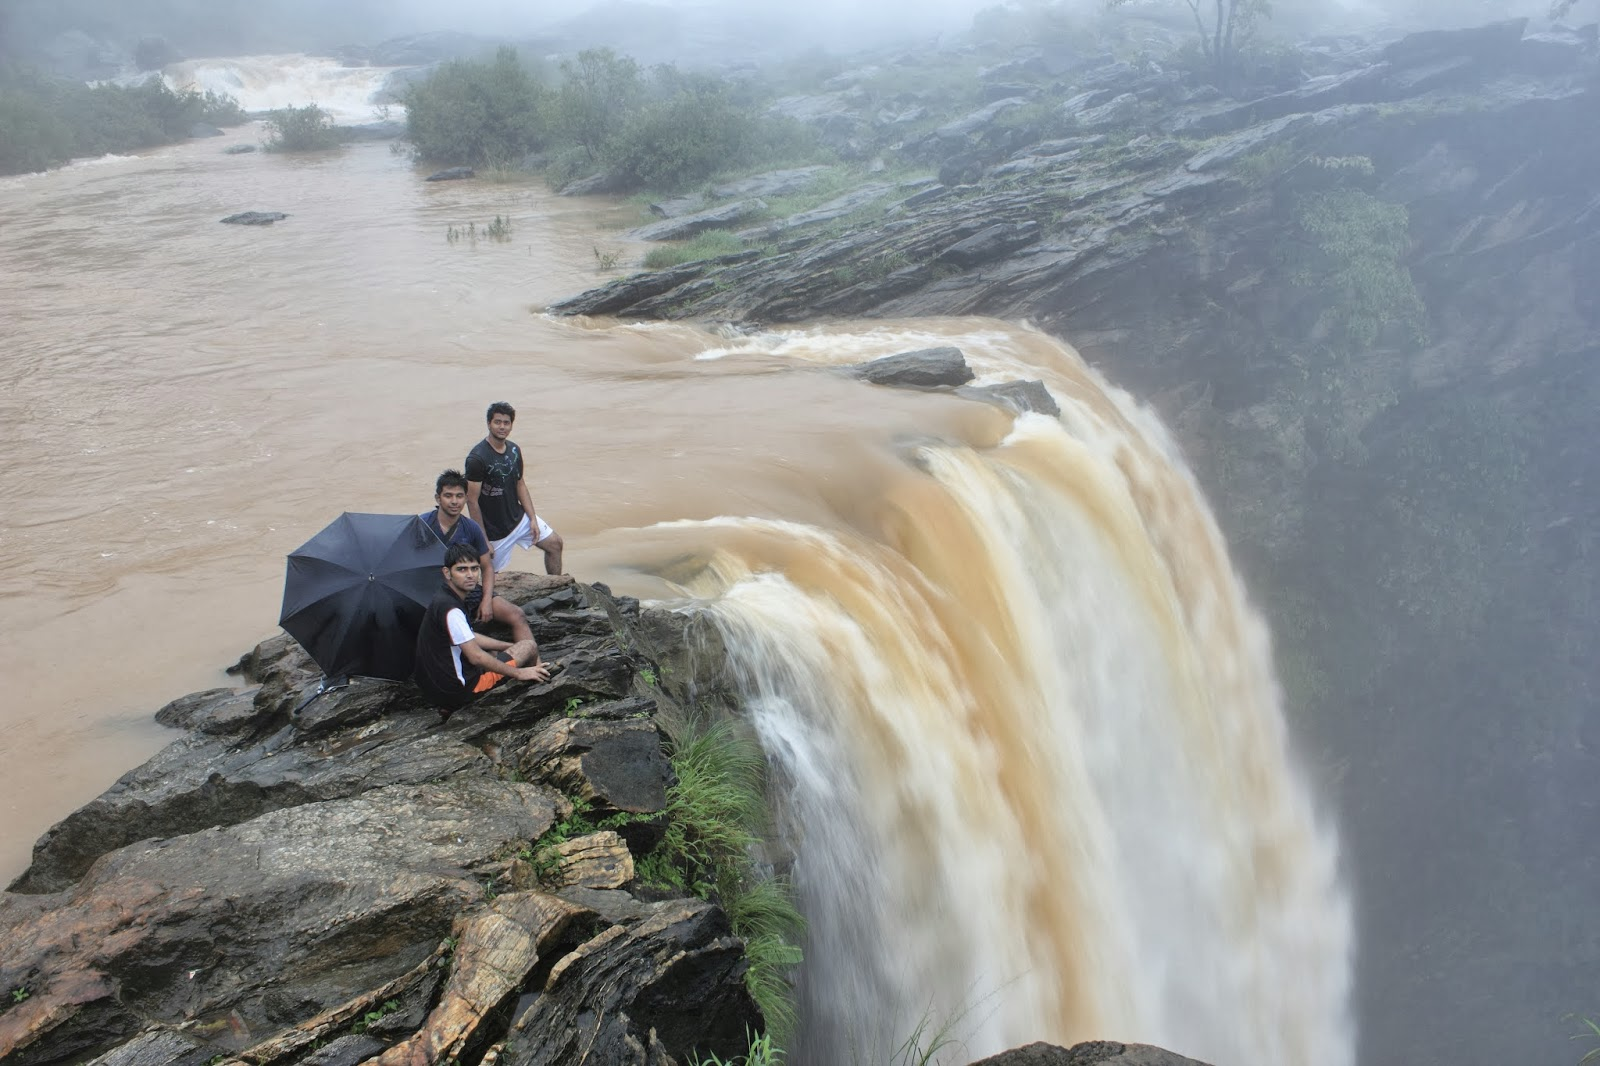 Shimoga India  City pictures : AdventureWorks zone: JOG FALLS SHIMOGA DIST. KARNATAKA, INDIA